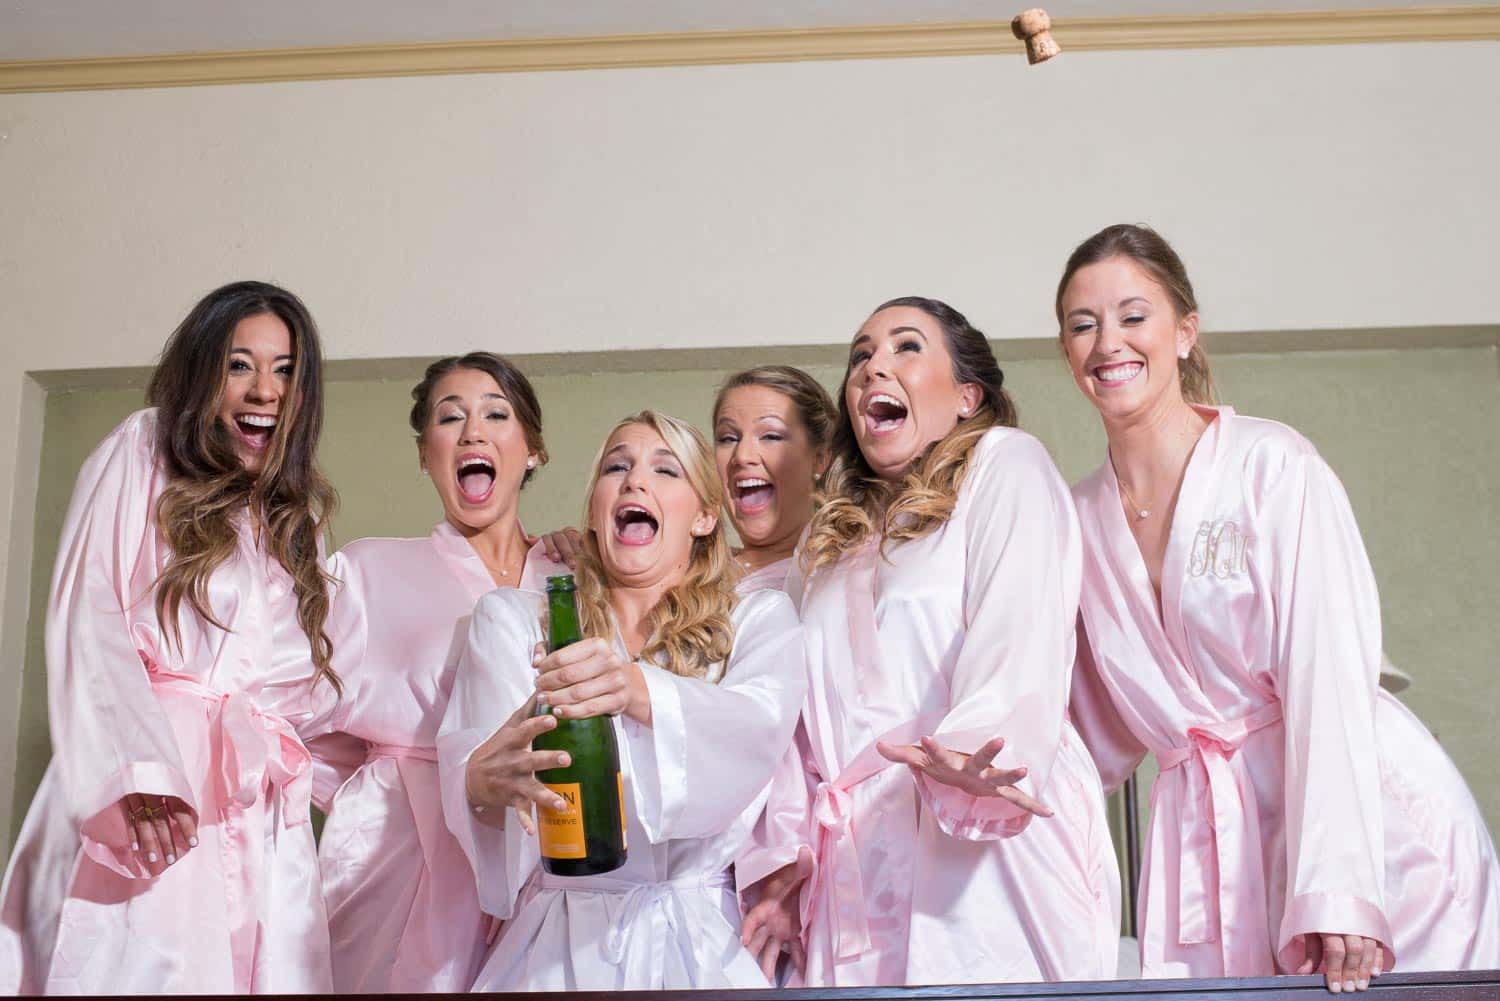 Bride and bridesmaids laughing while opening champagne